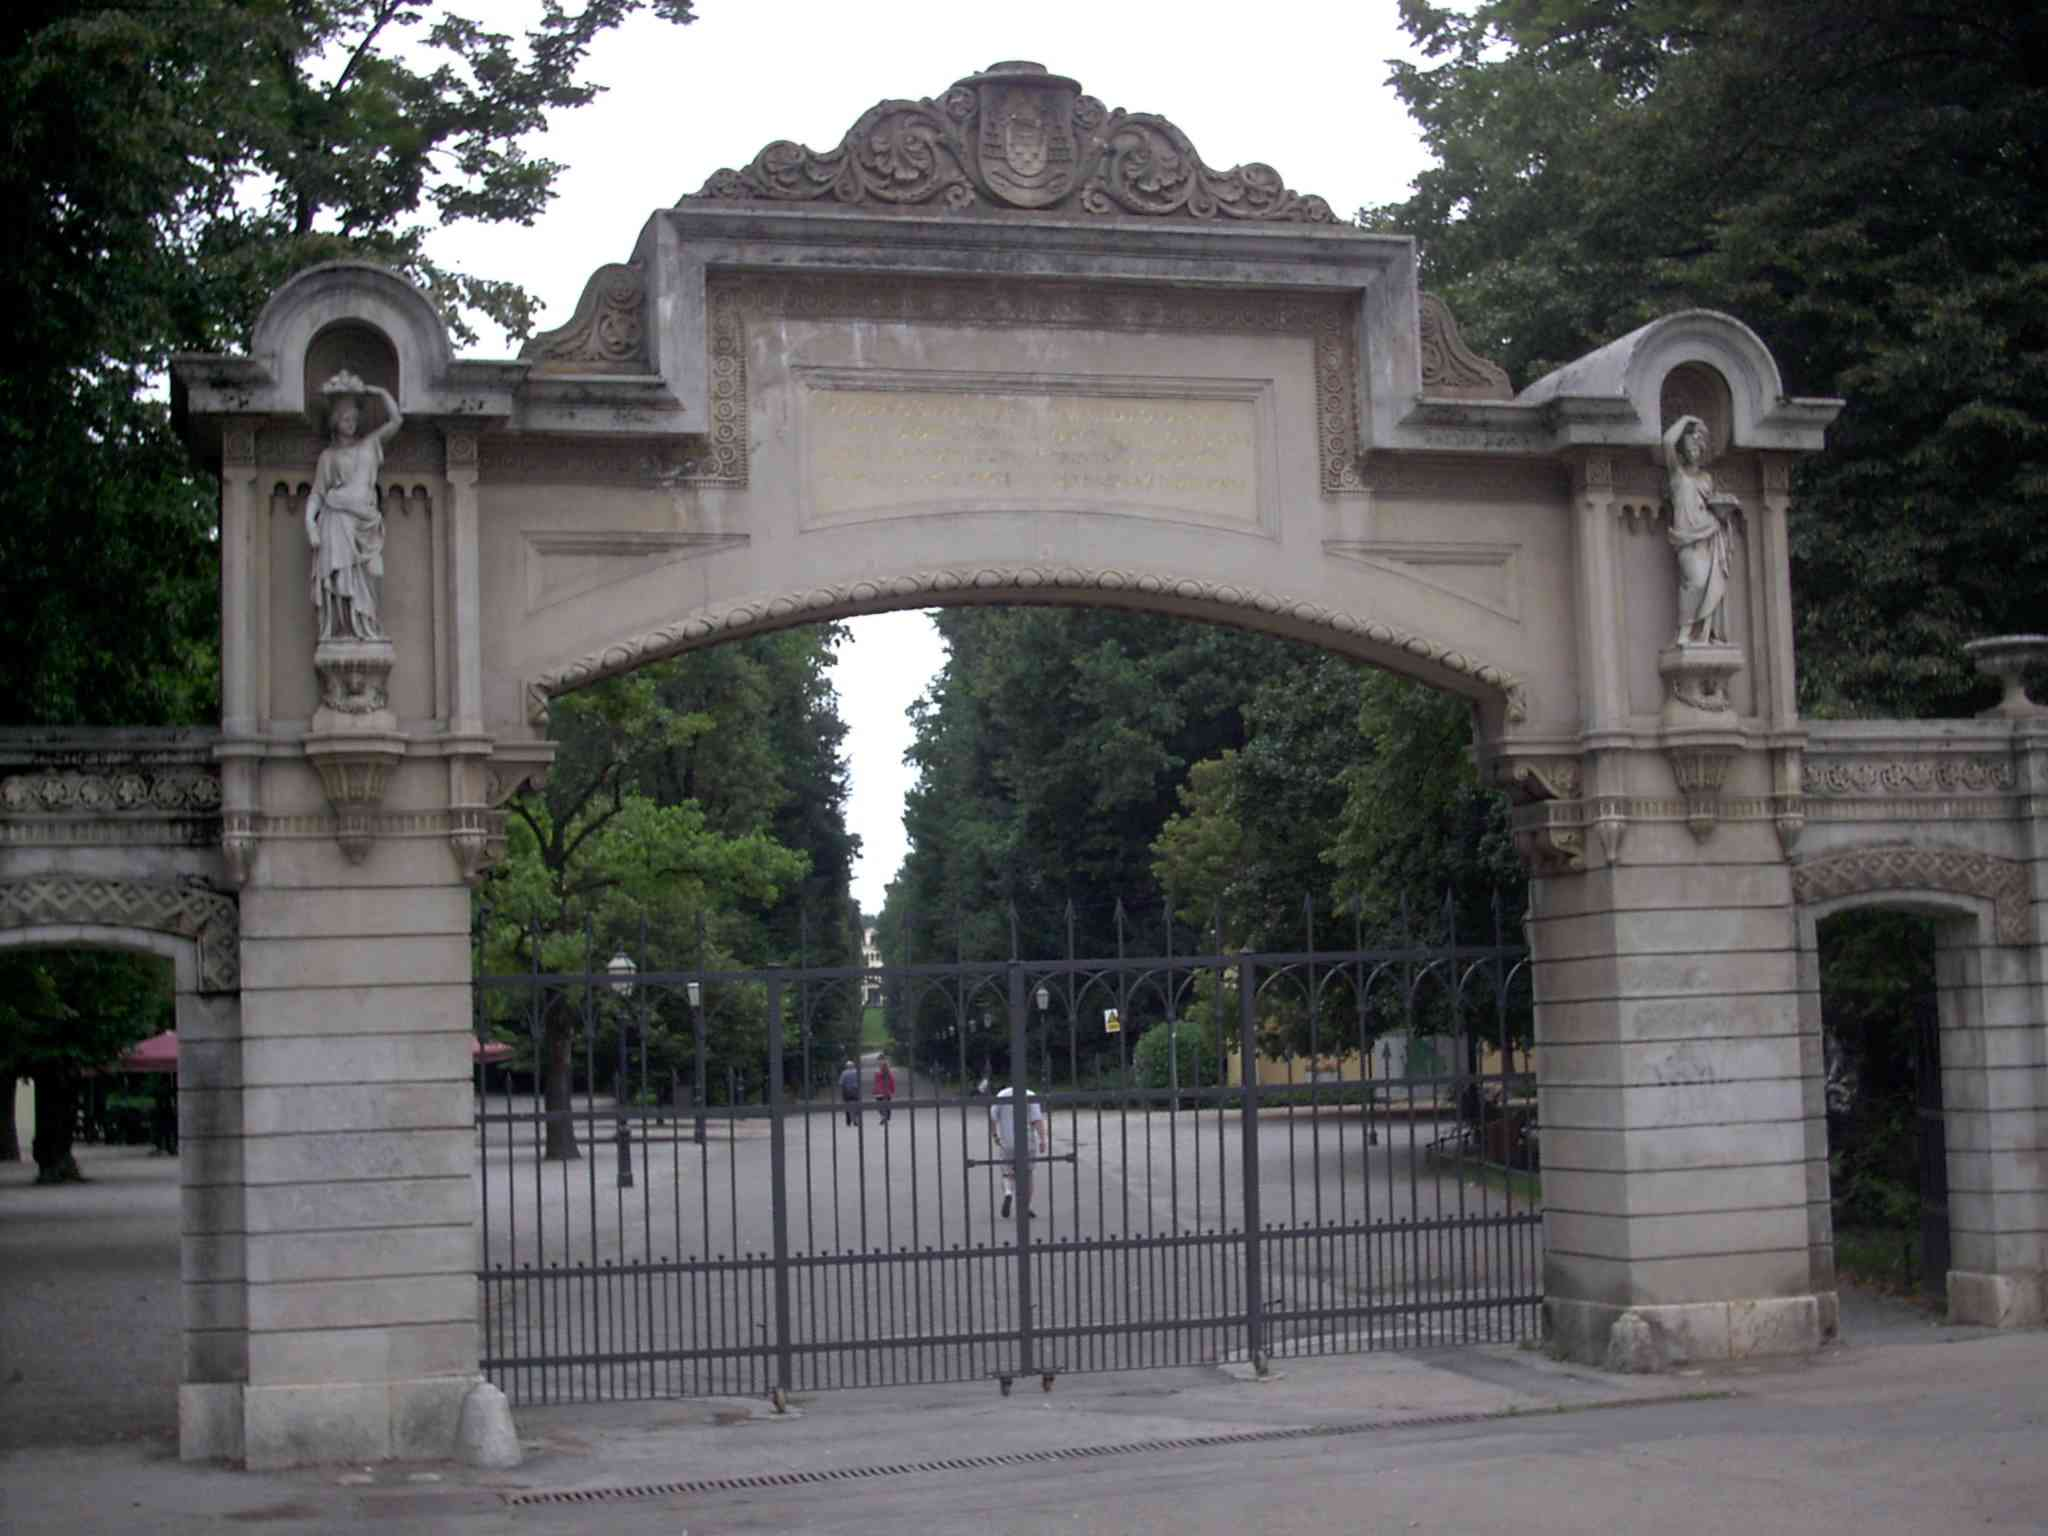 Maksimir Croatia  City new picture : Entrance to Maksimir Park, Zagreb, Croatia Wikipedia, the ...